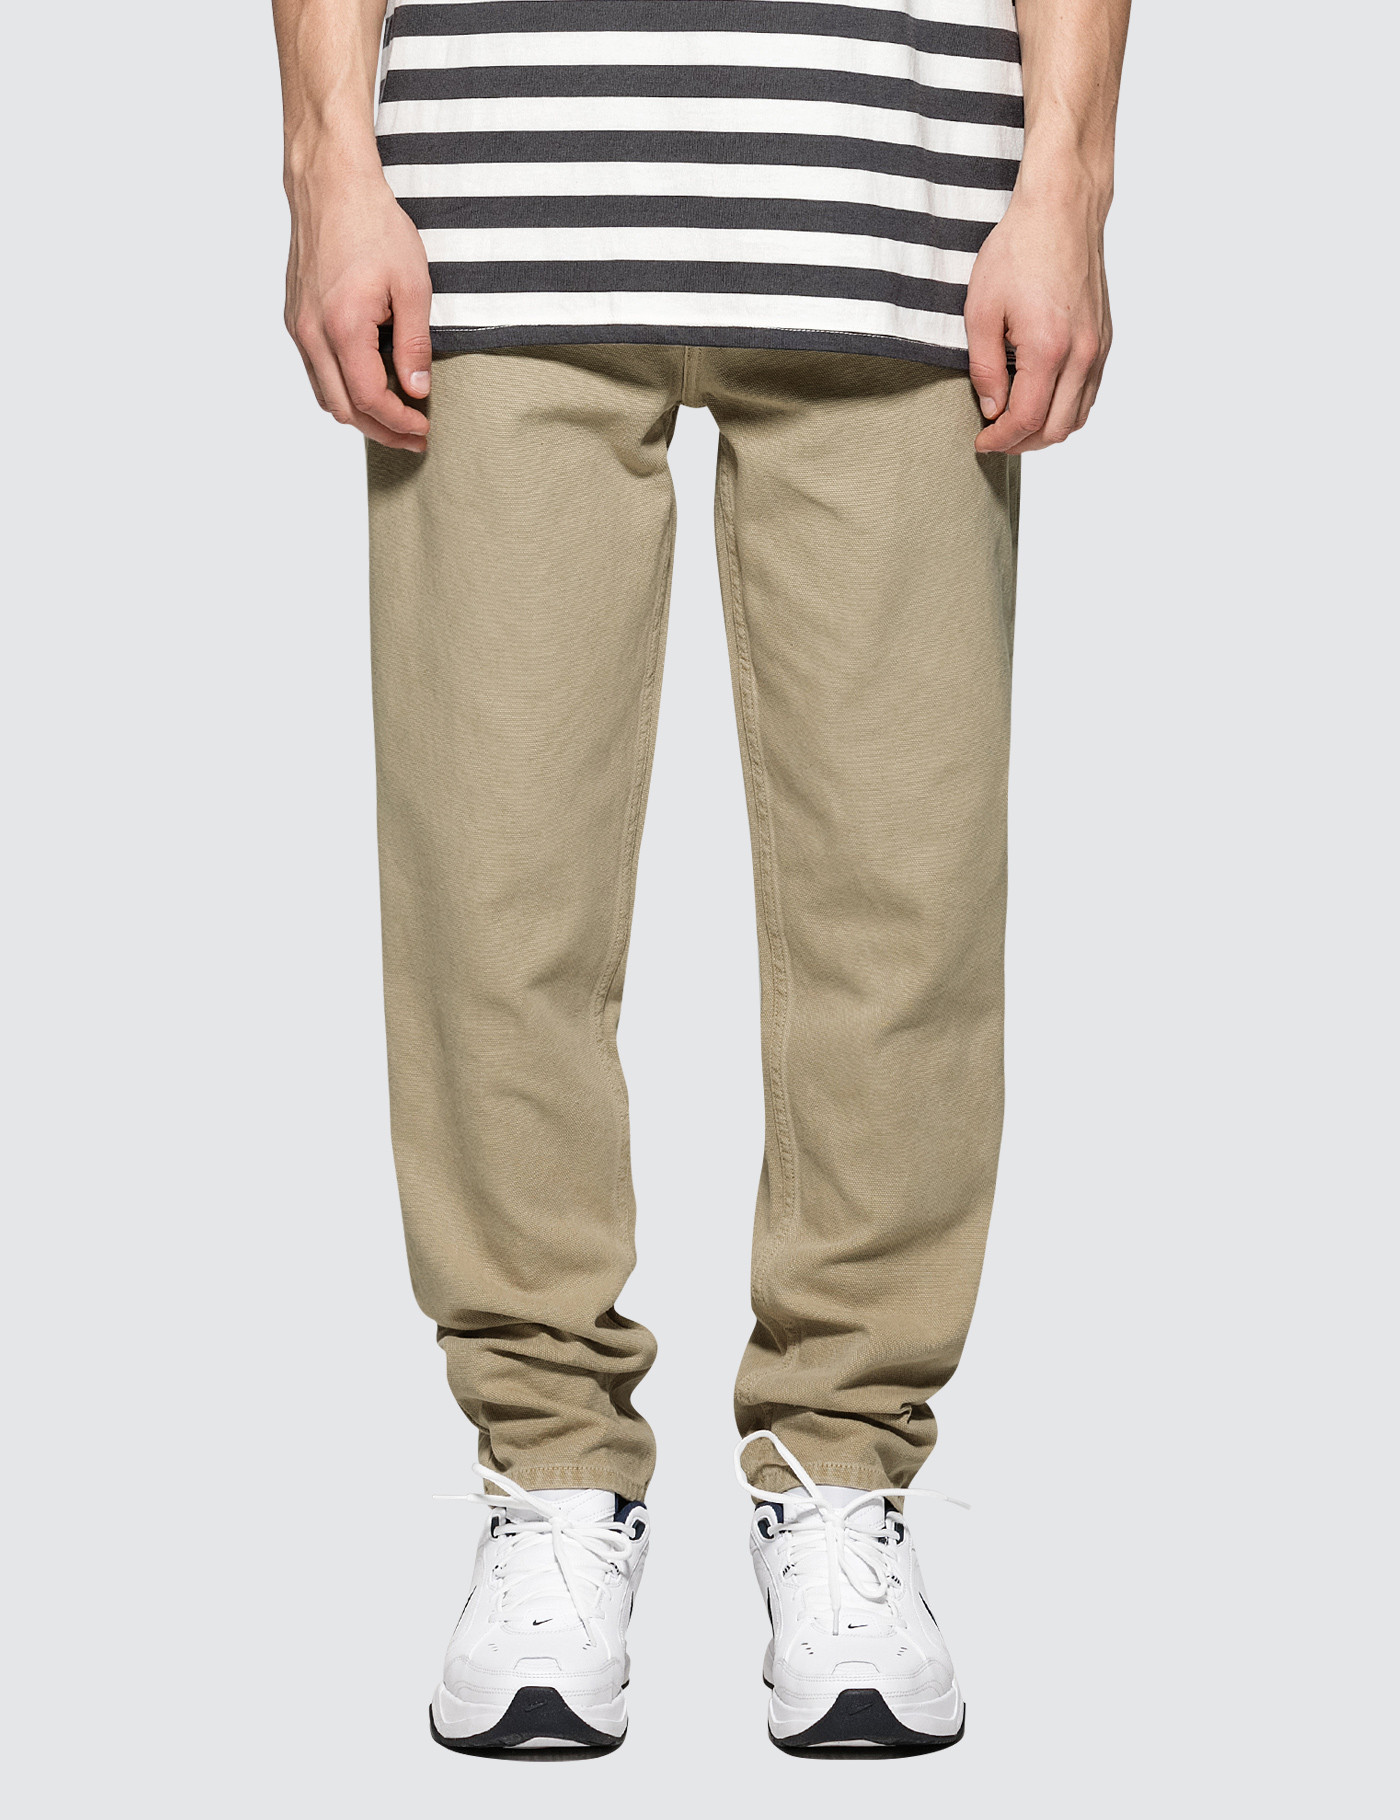 select for authentic new Super discount Guess x Straight Jeans, Infinite Archives